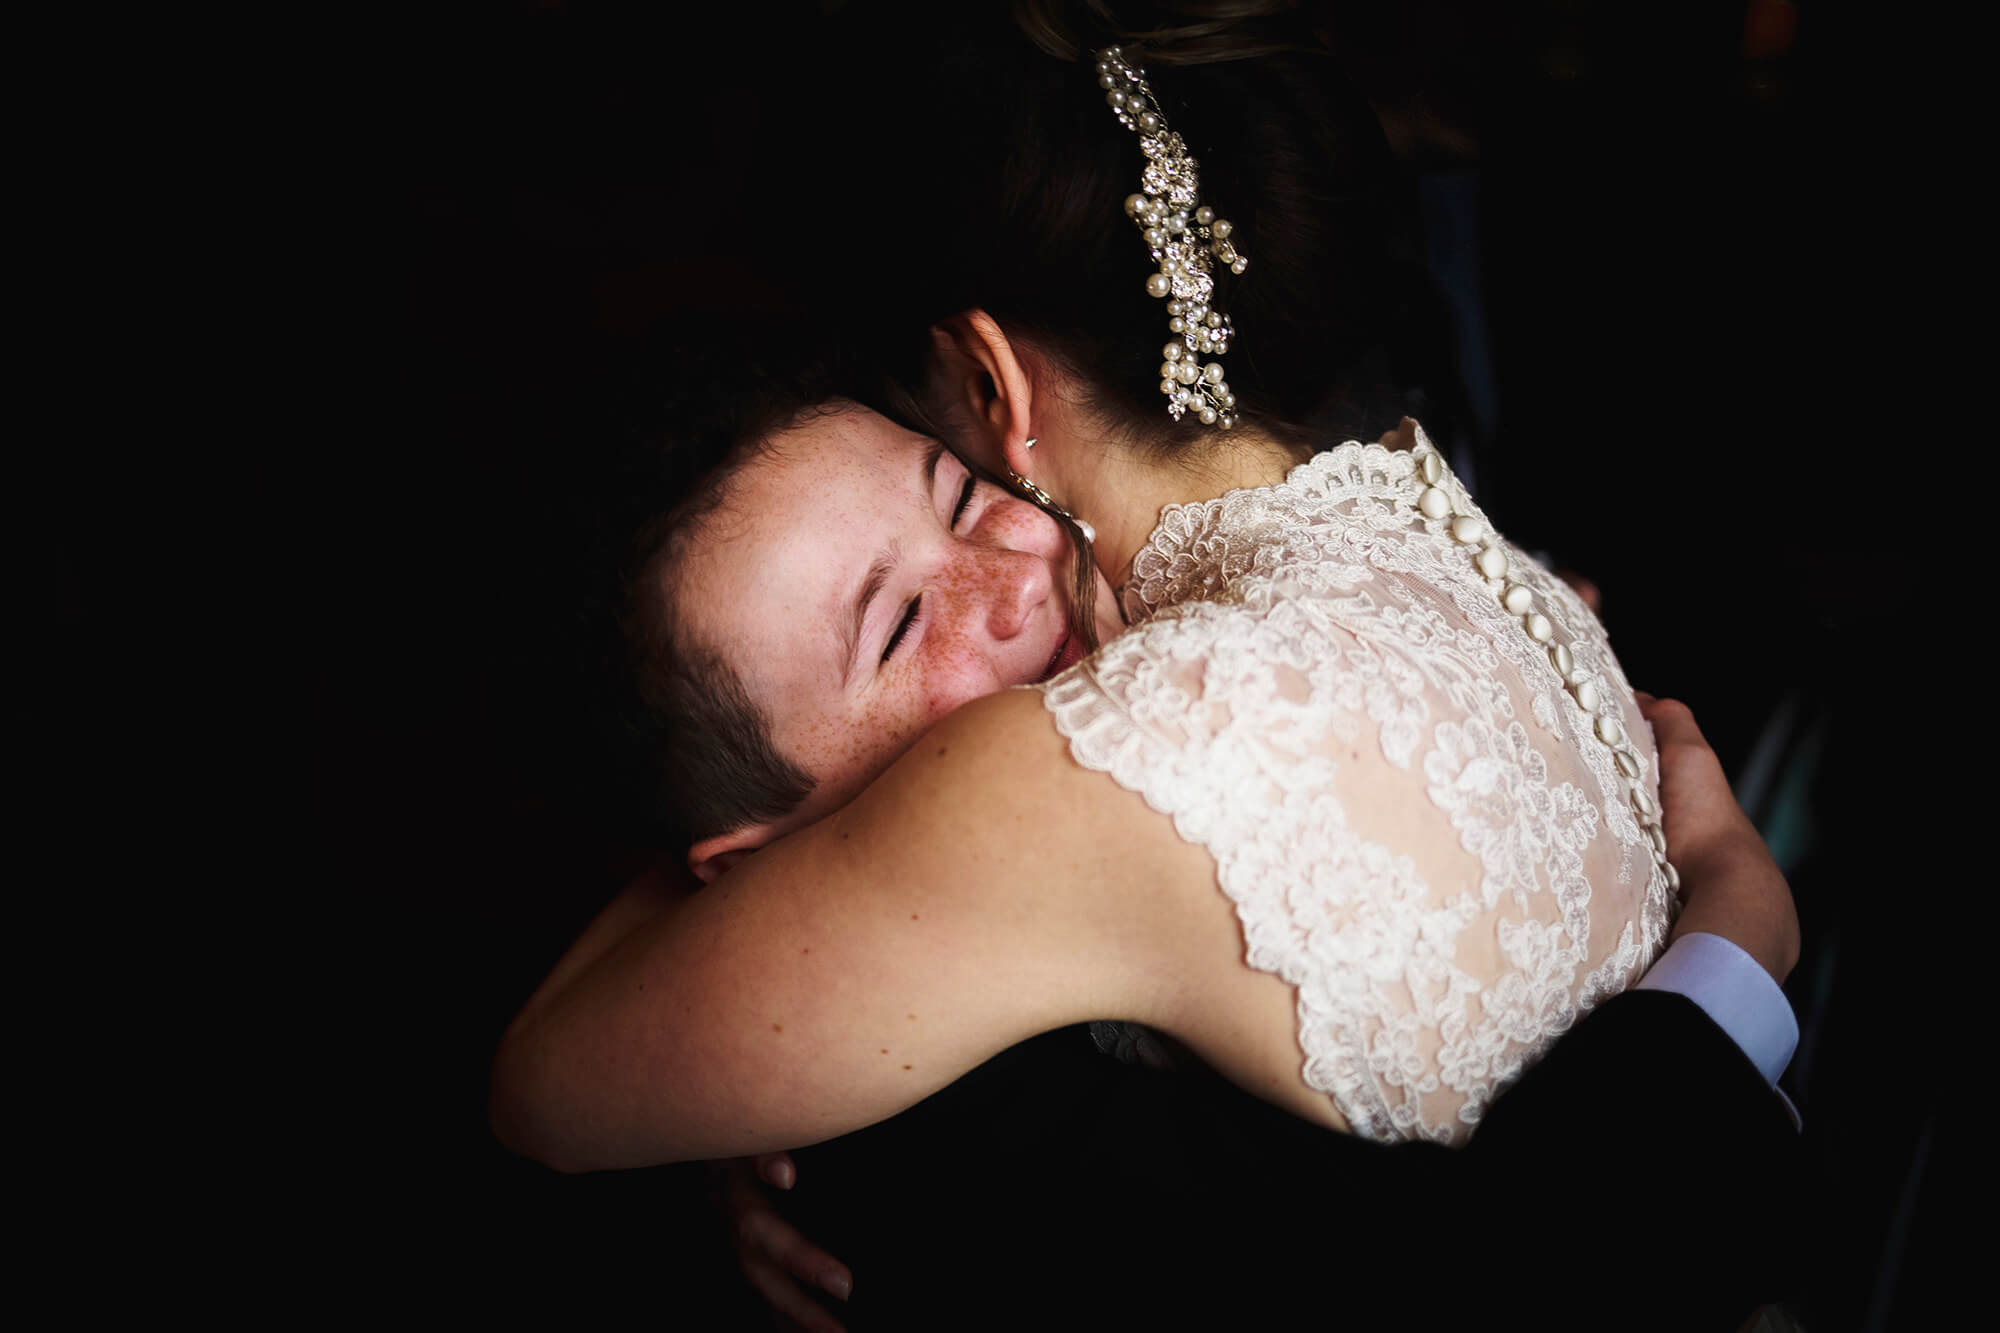 a hug with the bride